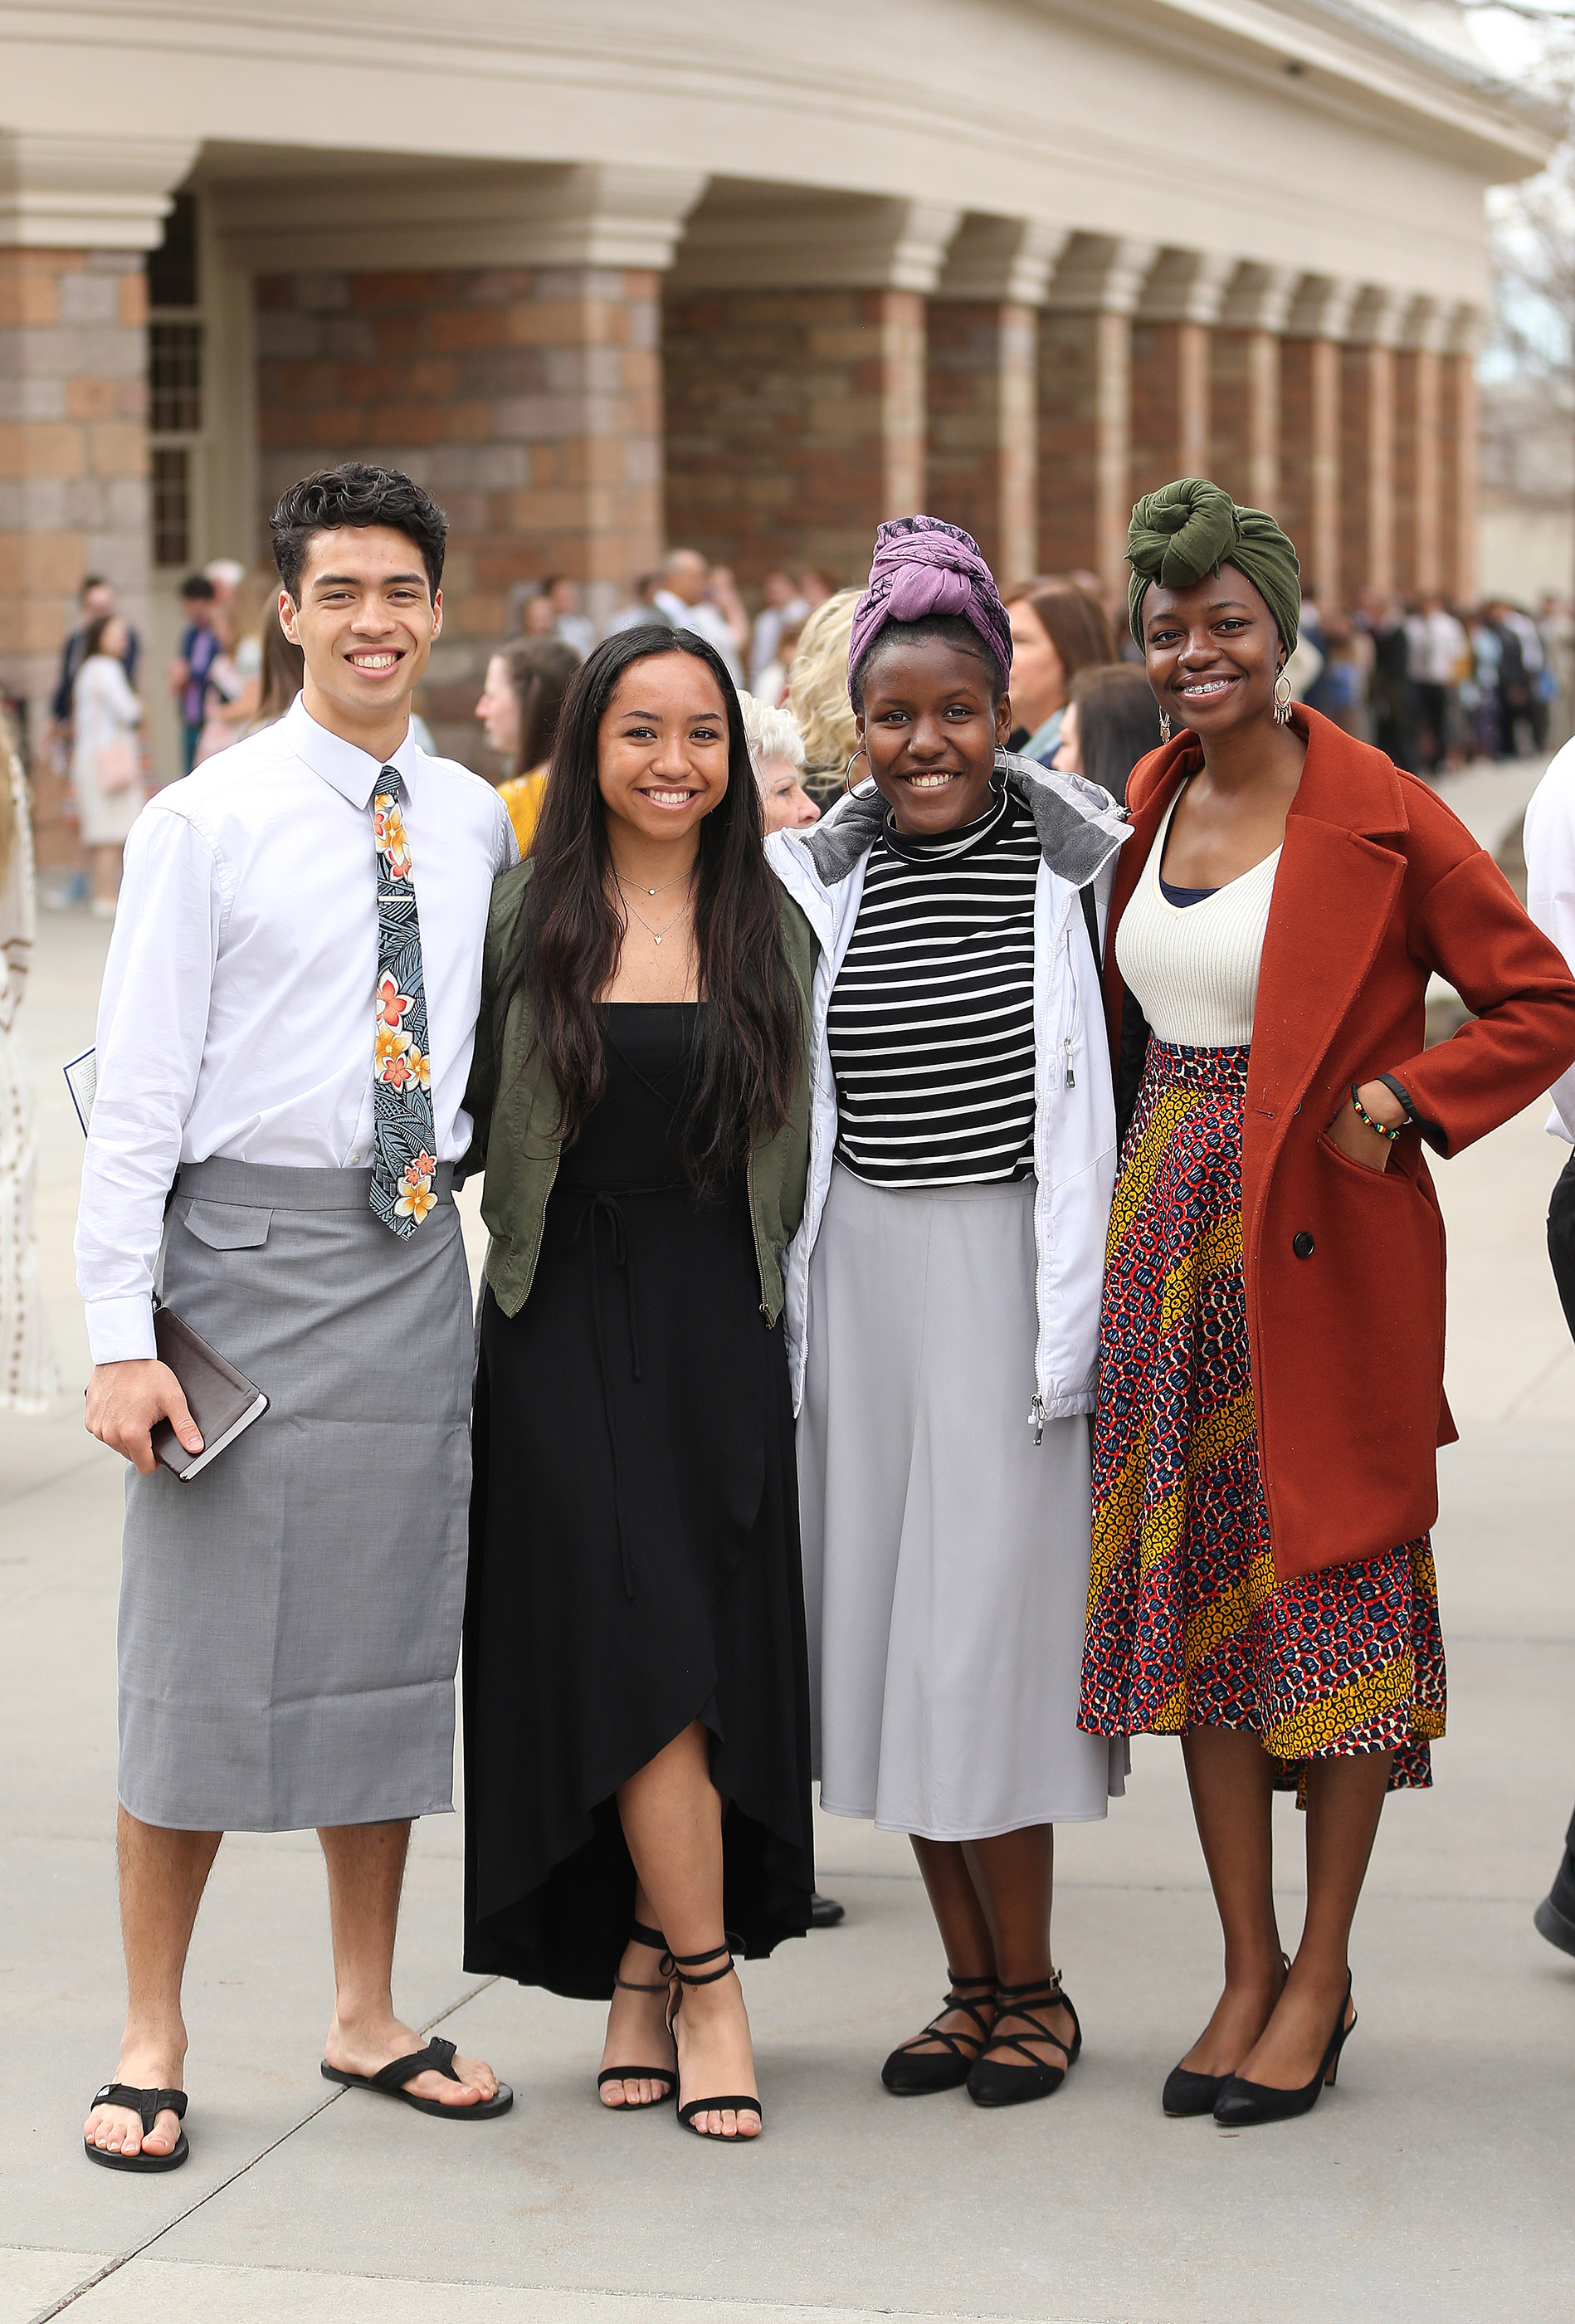 Kalawai'a Fano, Taliloa Fano, Kennethia Dorsey and Desiree Addo pause during the 189th Annual General Conference of The Church of Jesus Christ of Latter-day Saints in Salt Lake City on Sunday, April 7, 2019.